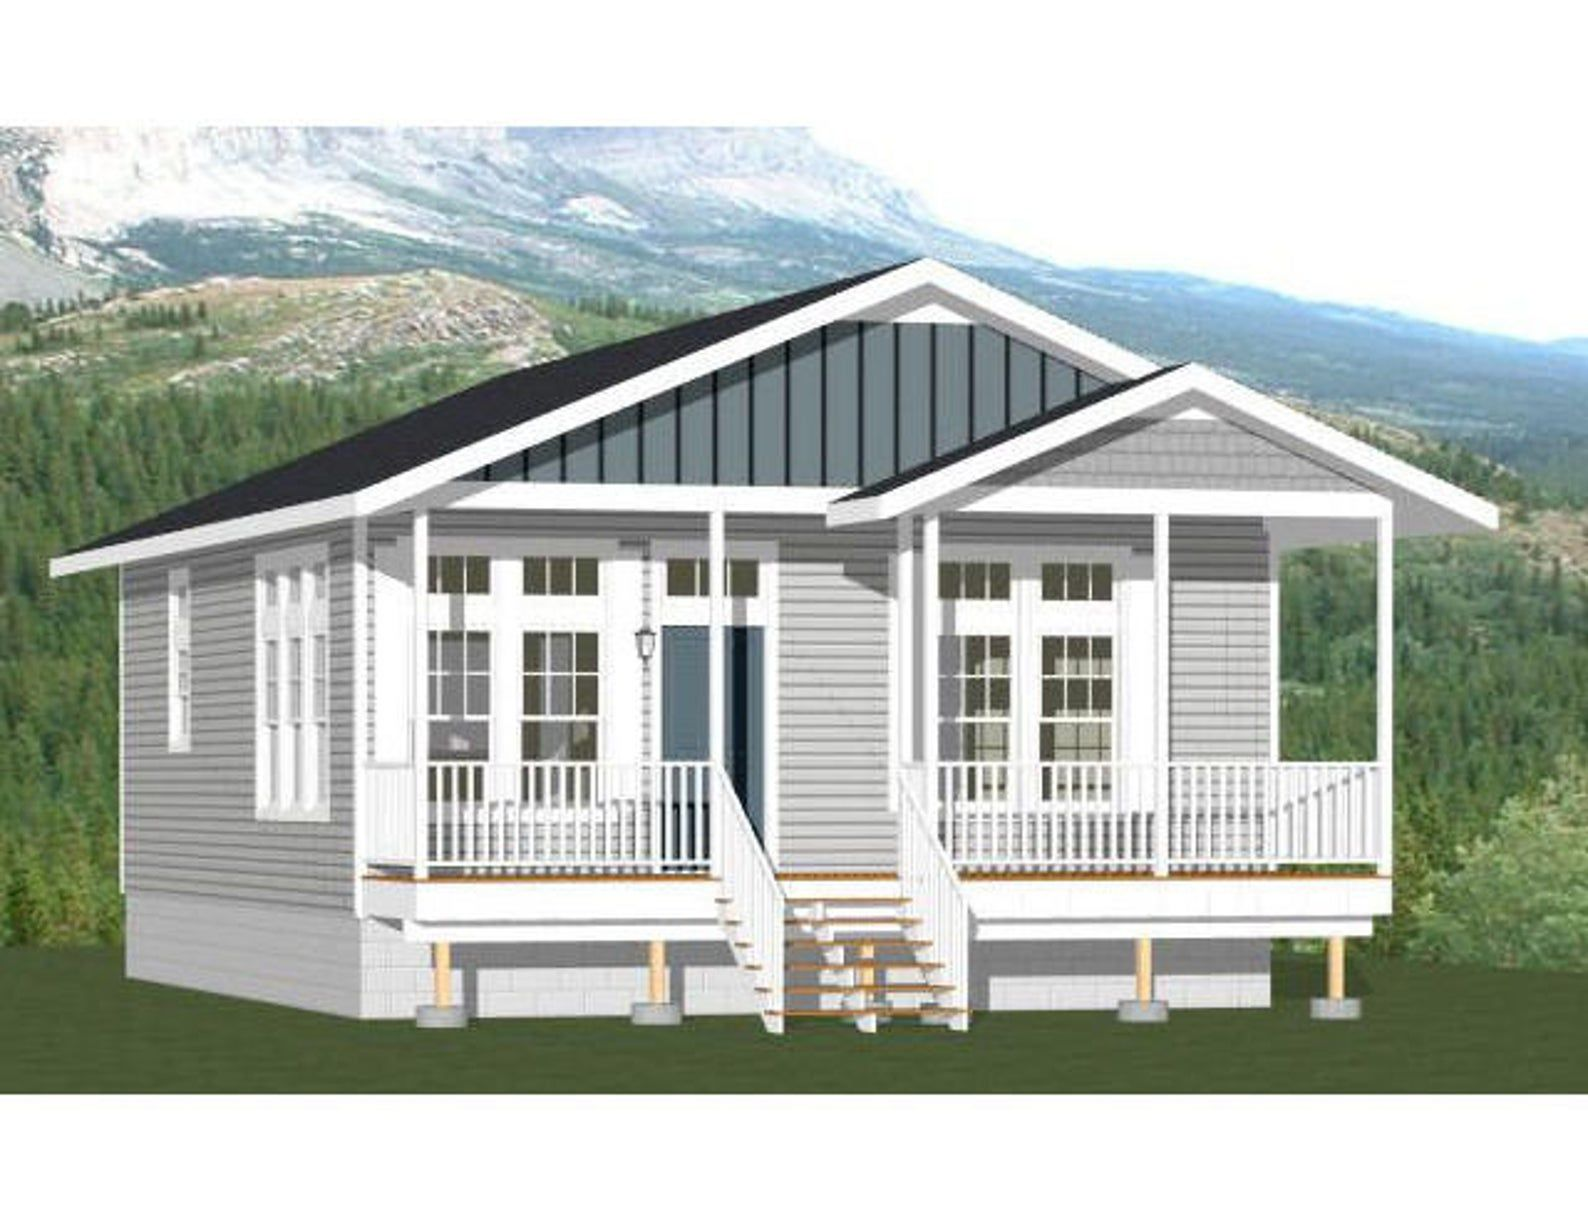 26x32 House 2 Bedroom 2 Bath 832 Sq Ft Pdf Floor Plan Etsy In 2021 Cottage Style House Plans House Plans Small House Design